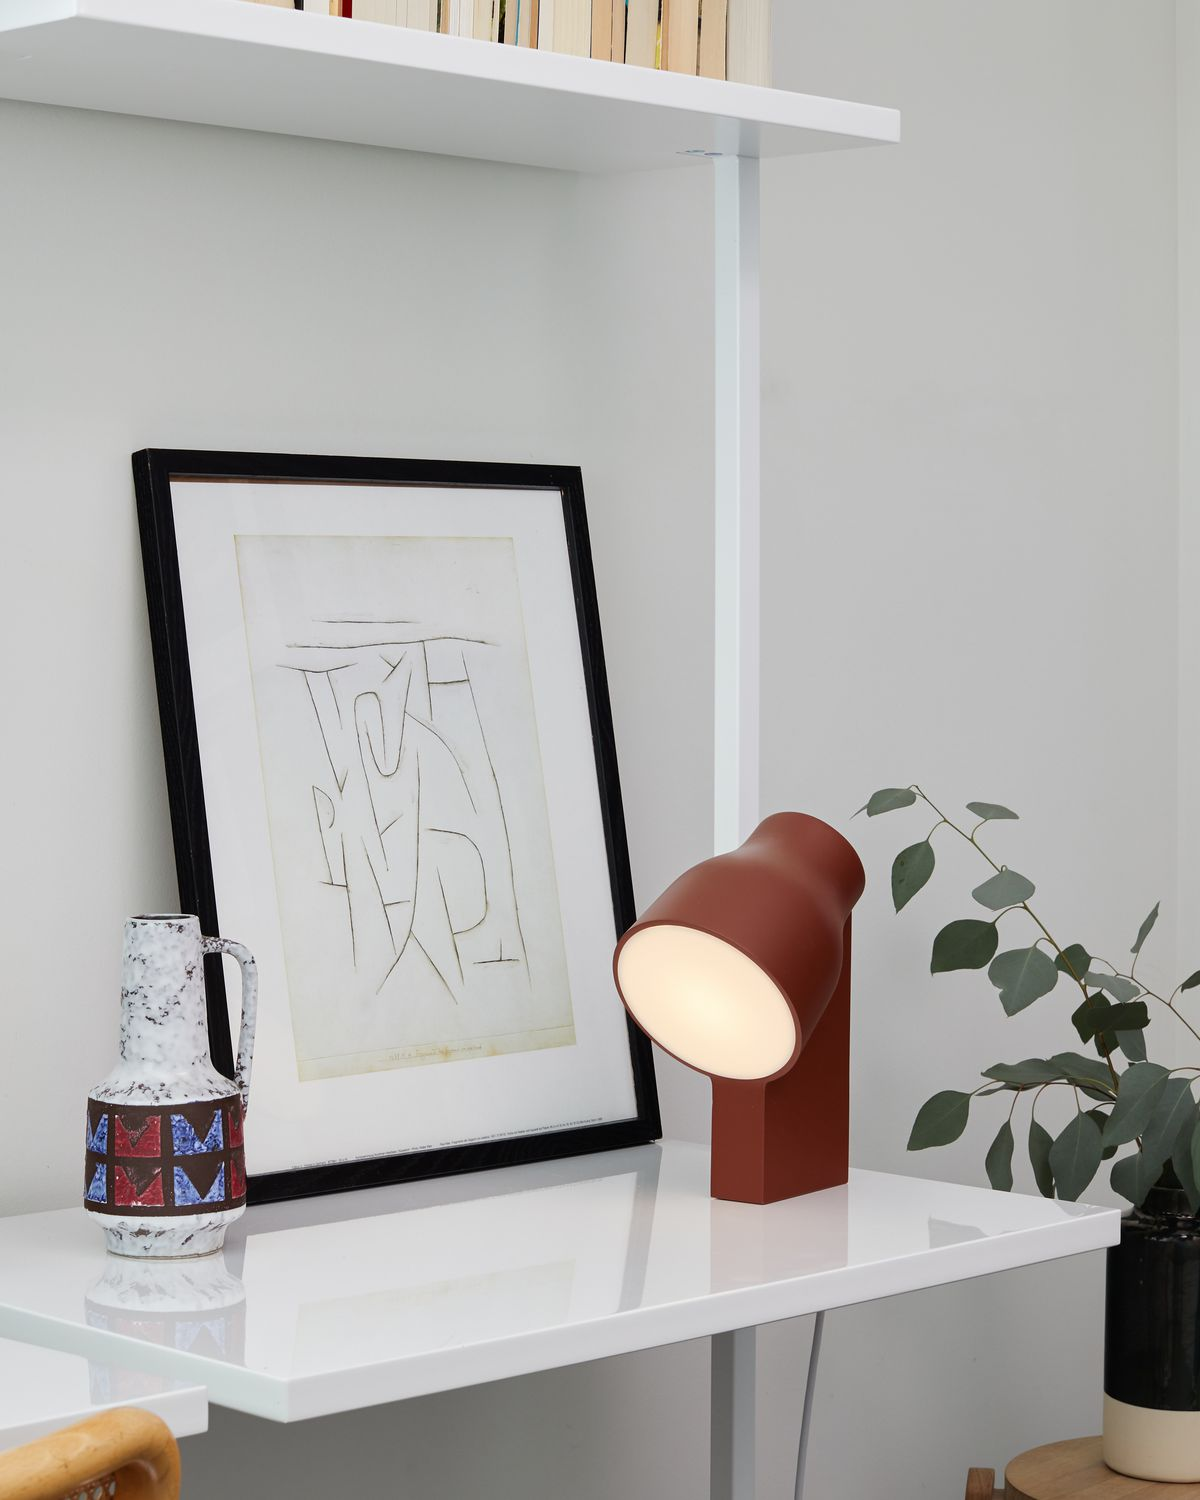 Red table lamp on desk.